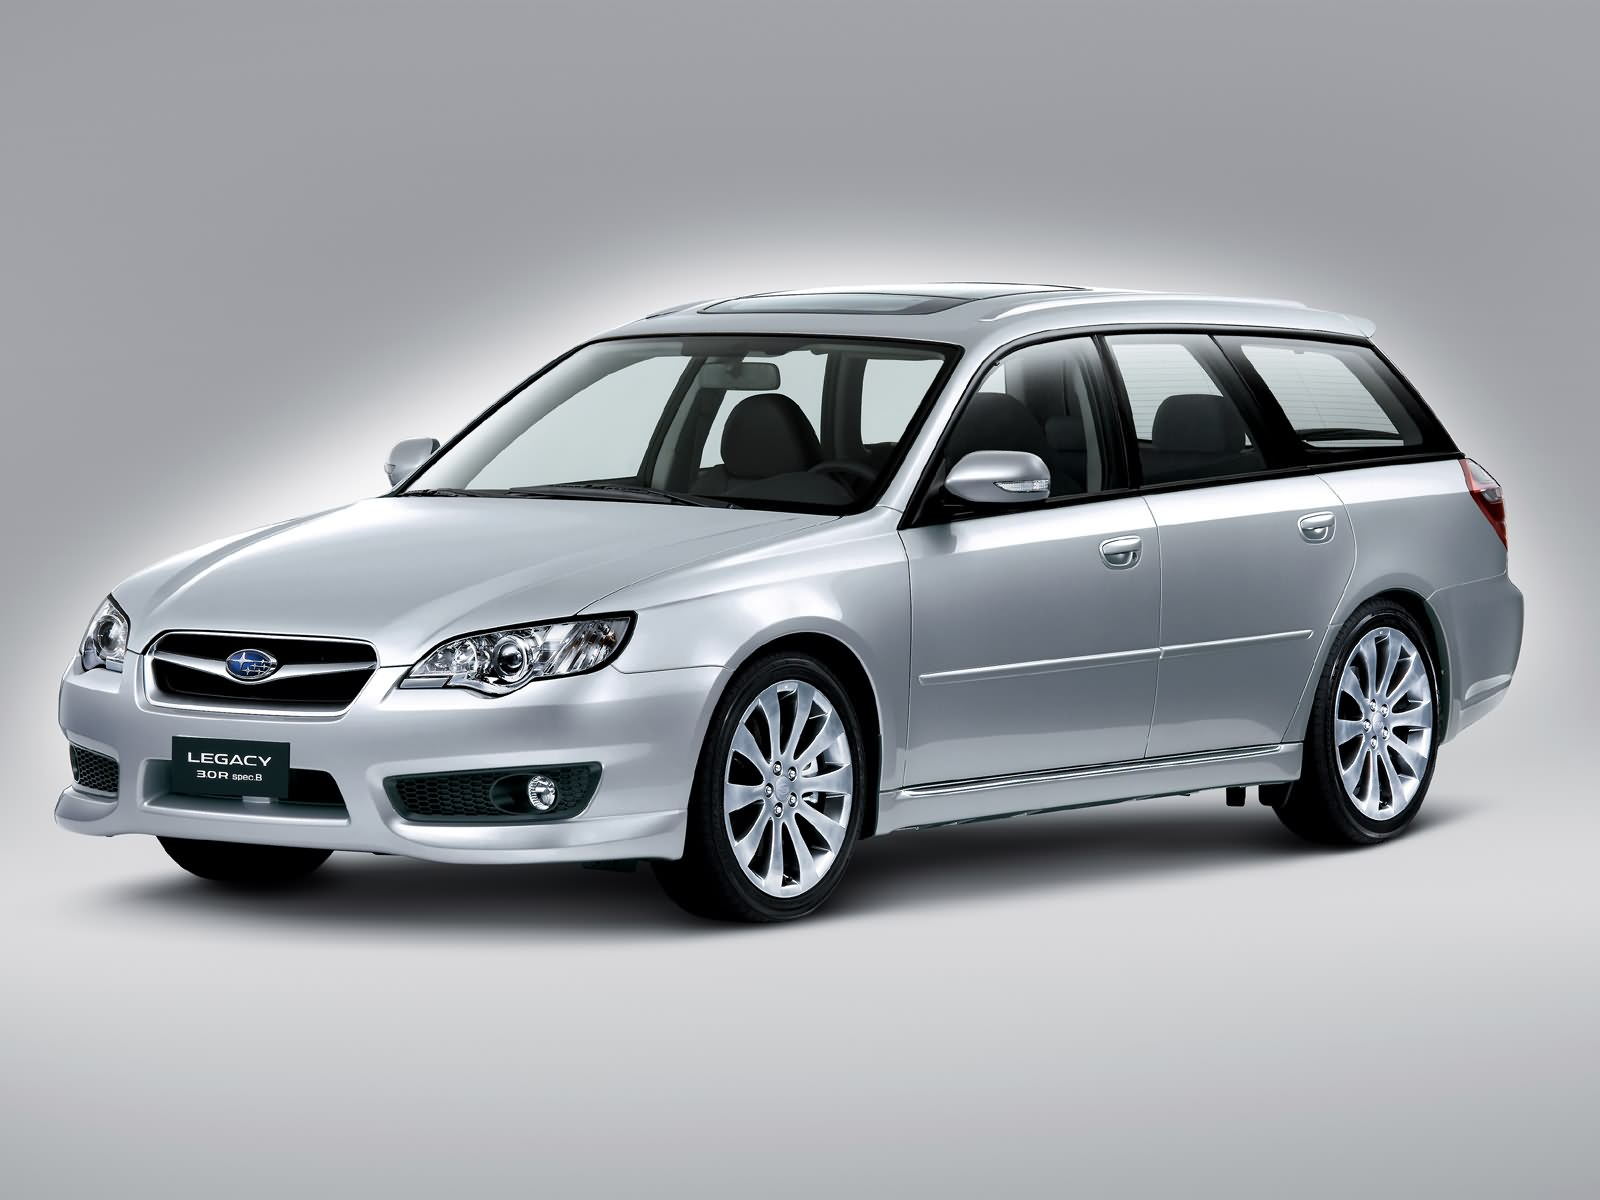 subaru legacy iv 2006 wallpaper #4